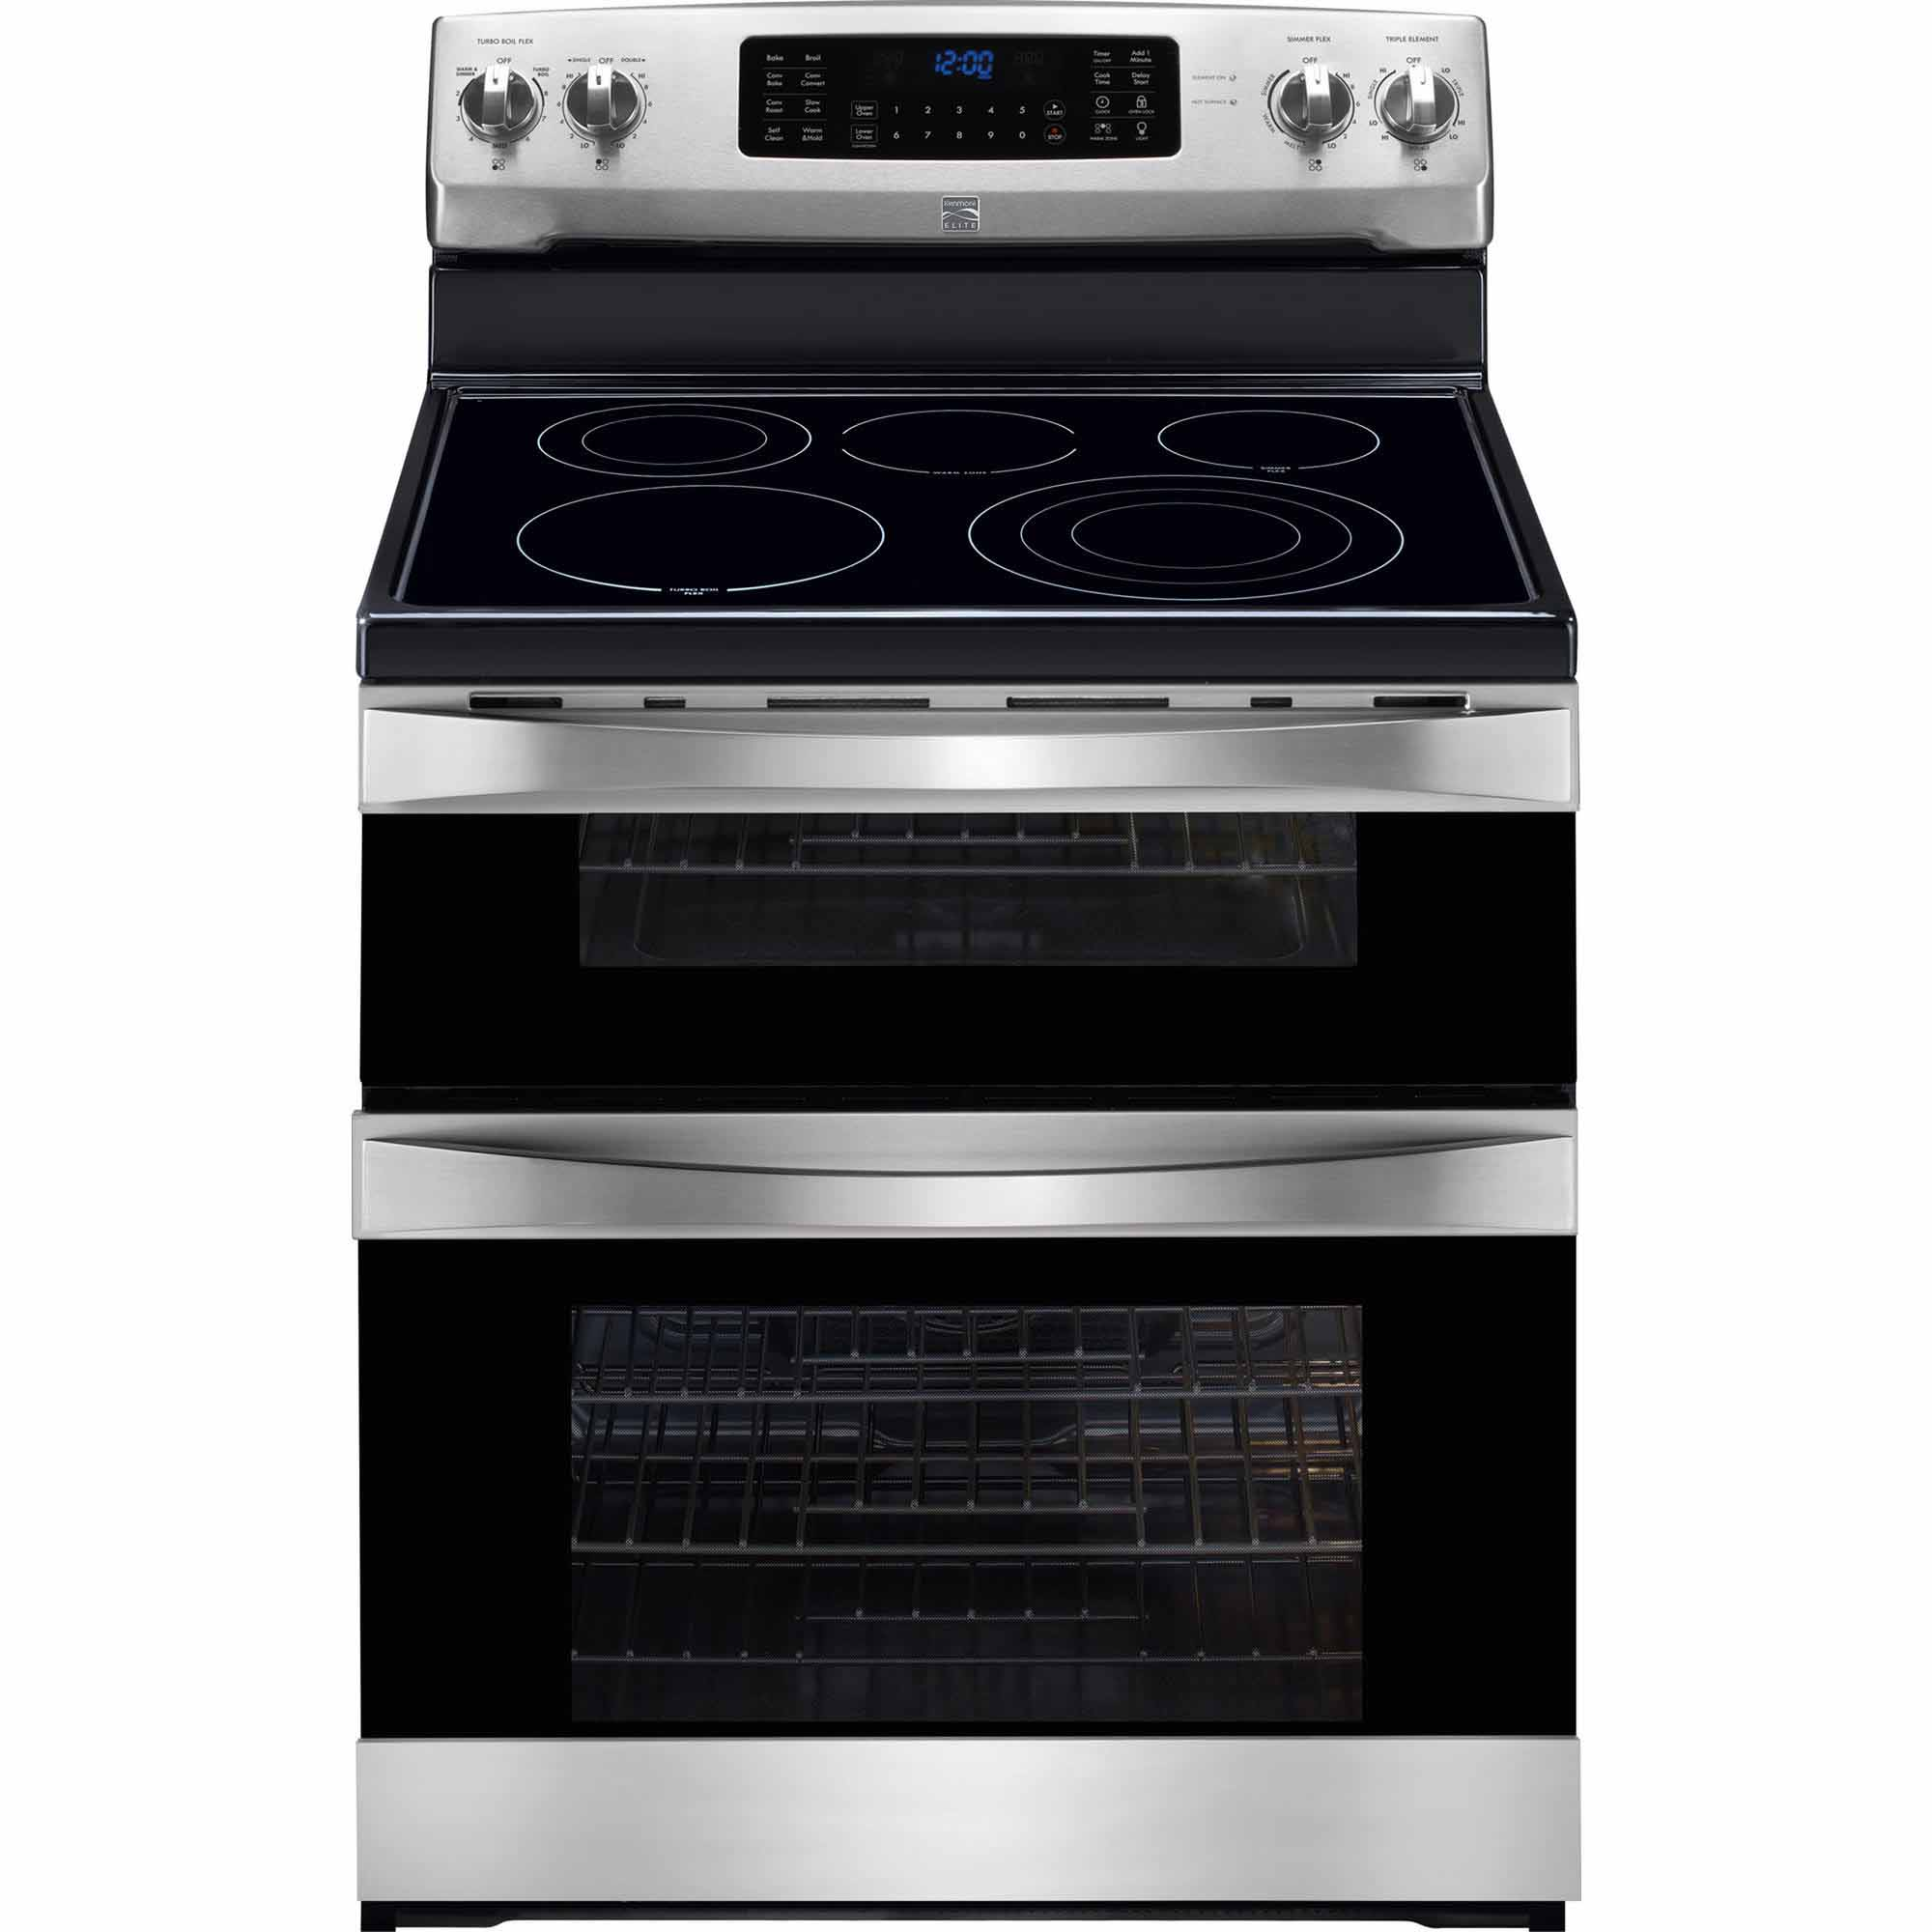 97313-6-9-cu-ft-Double-Oven-Electric-Range-w-True-Convection-Stainless-Steel-w-Black-Trim